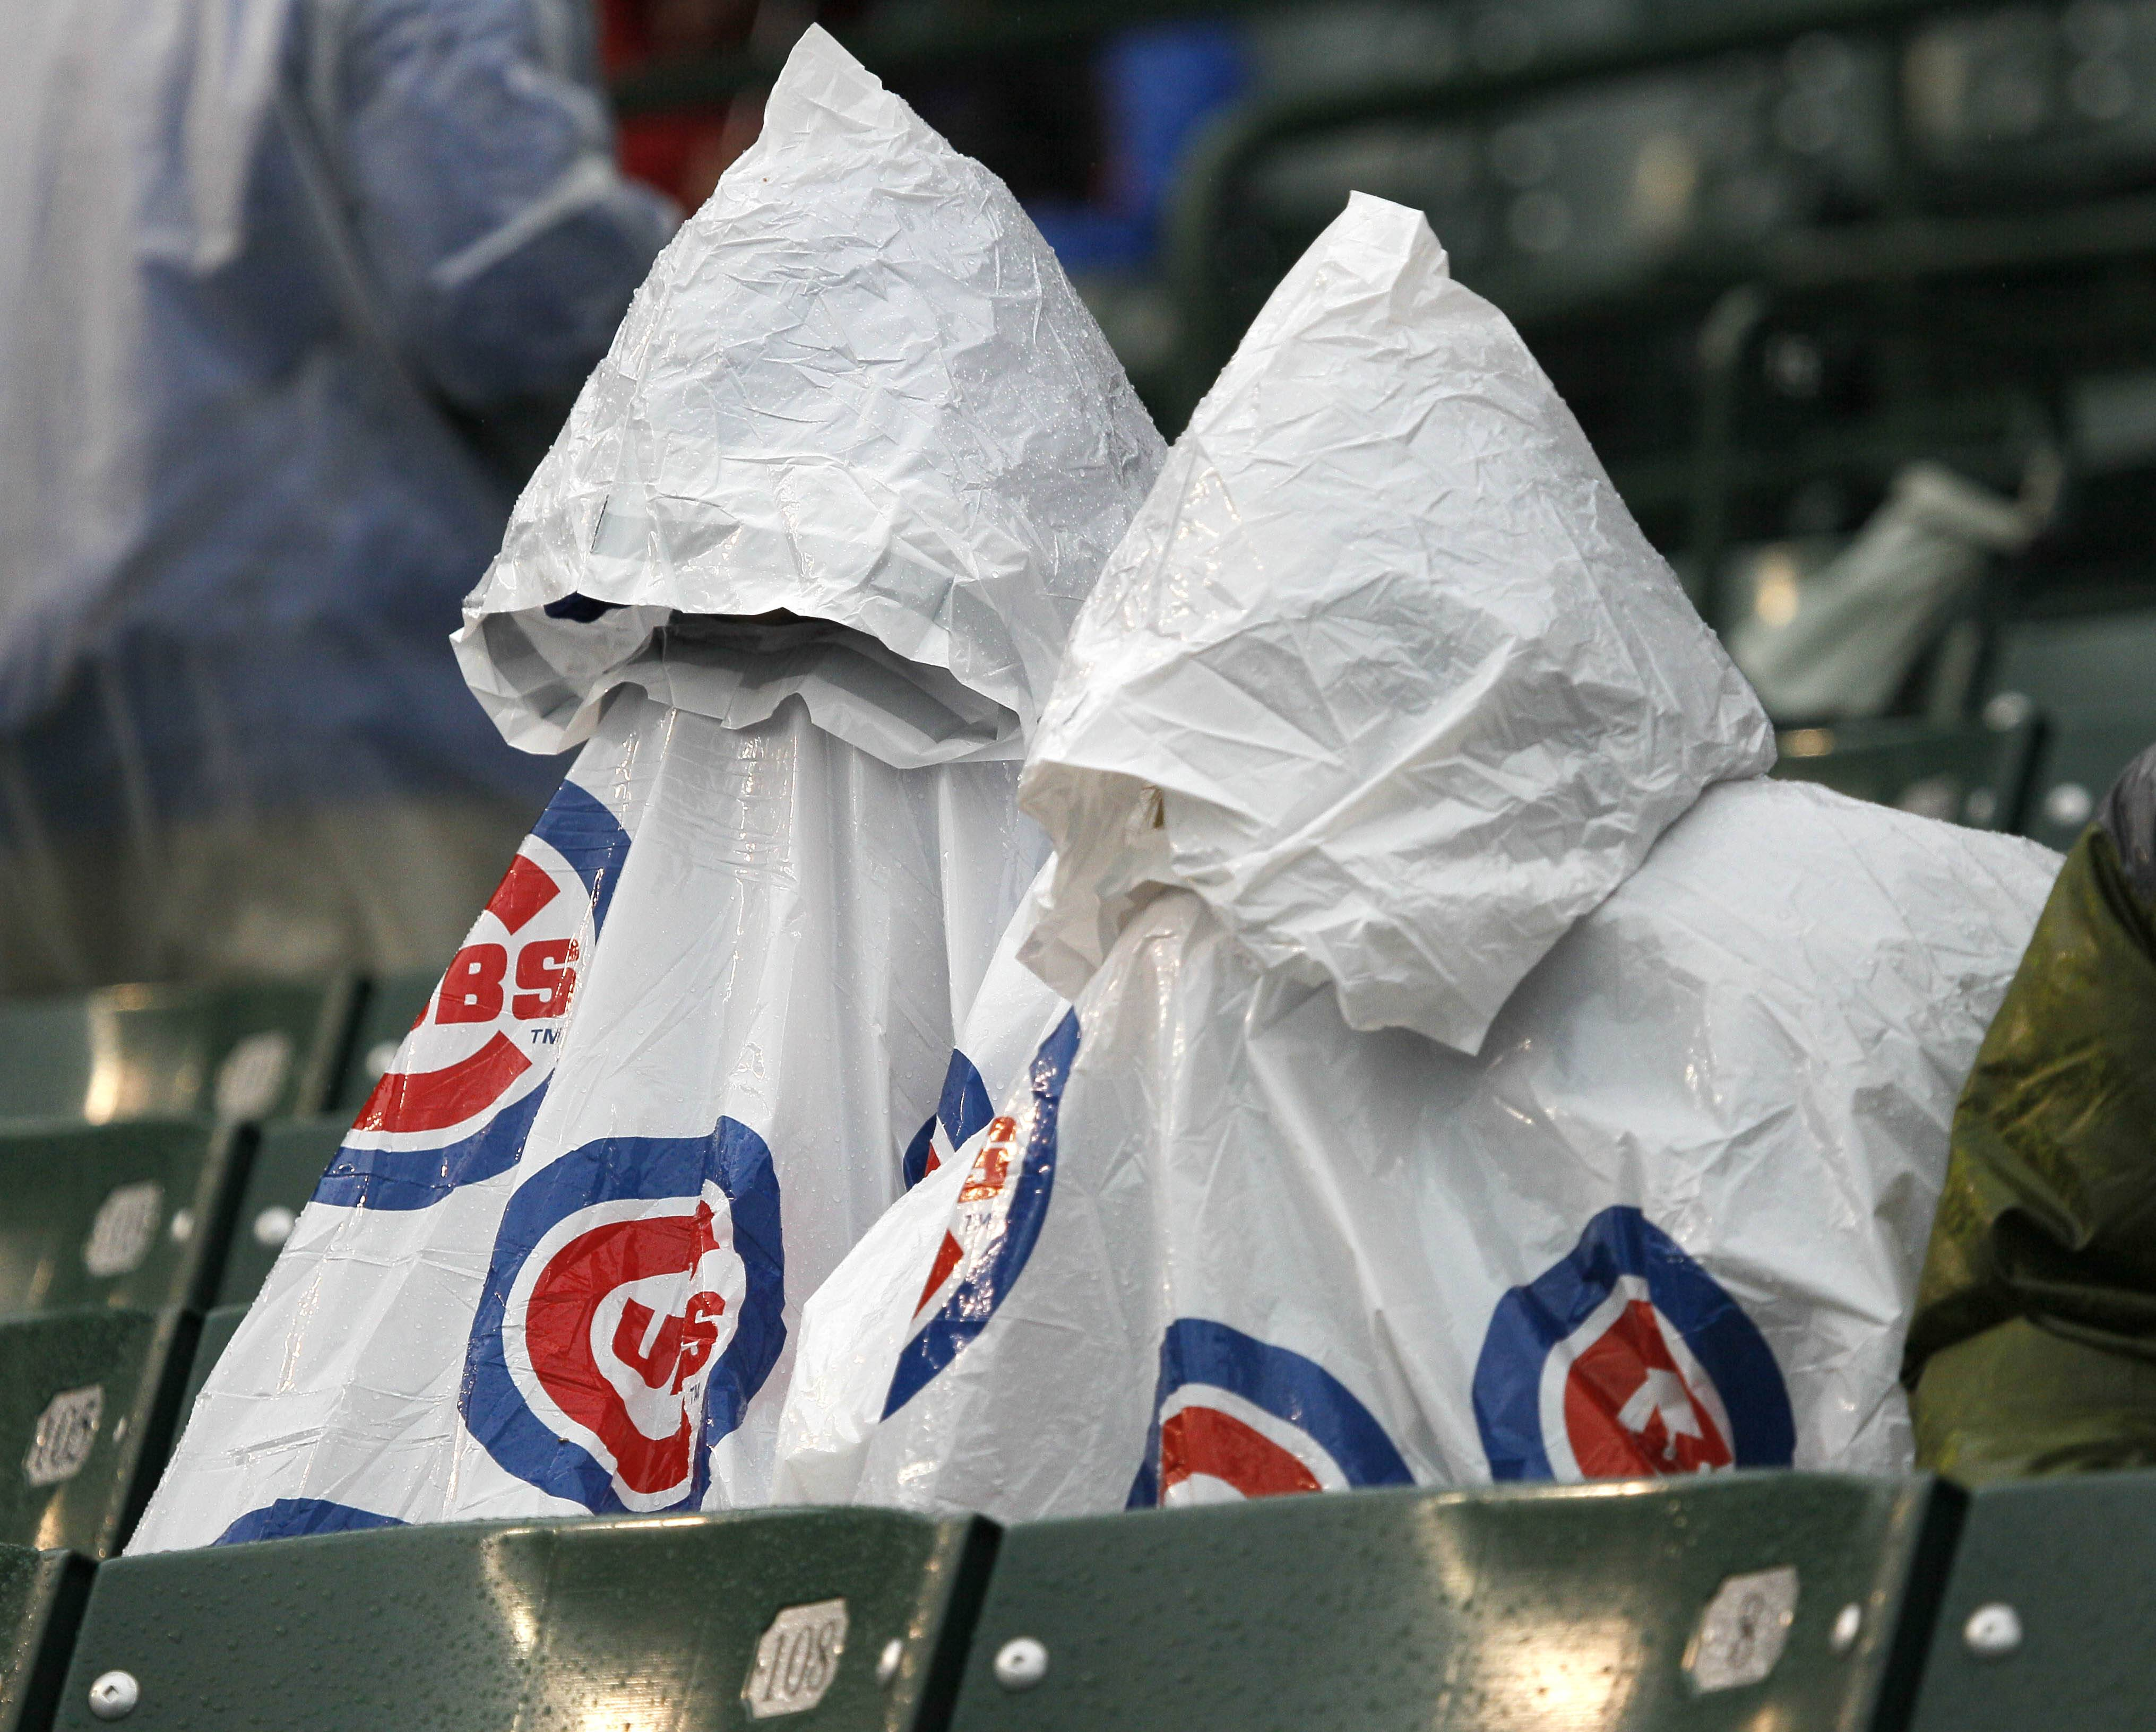 Cubs fans cover up during a rain delay Wednesday at Wrigley Field. The game is postponed due to rain and scheduled for June 27.